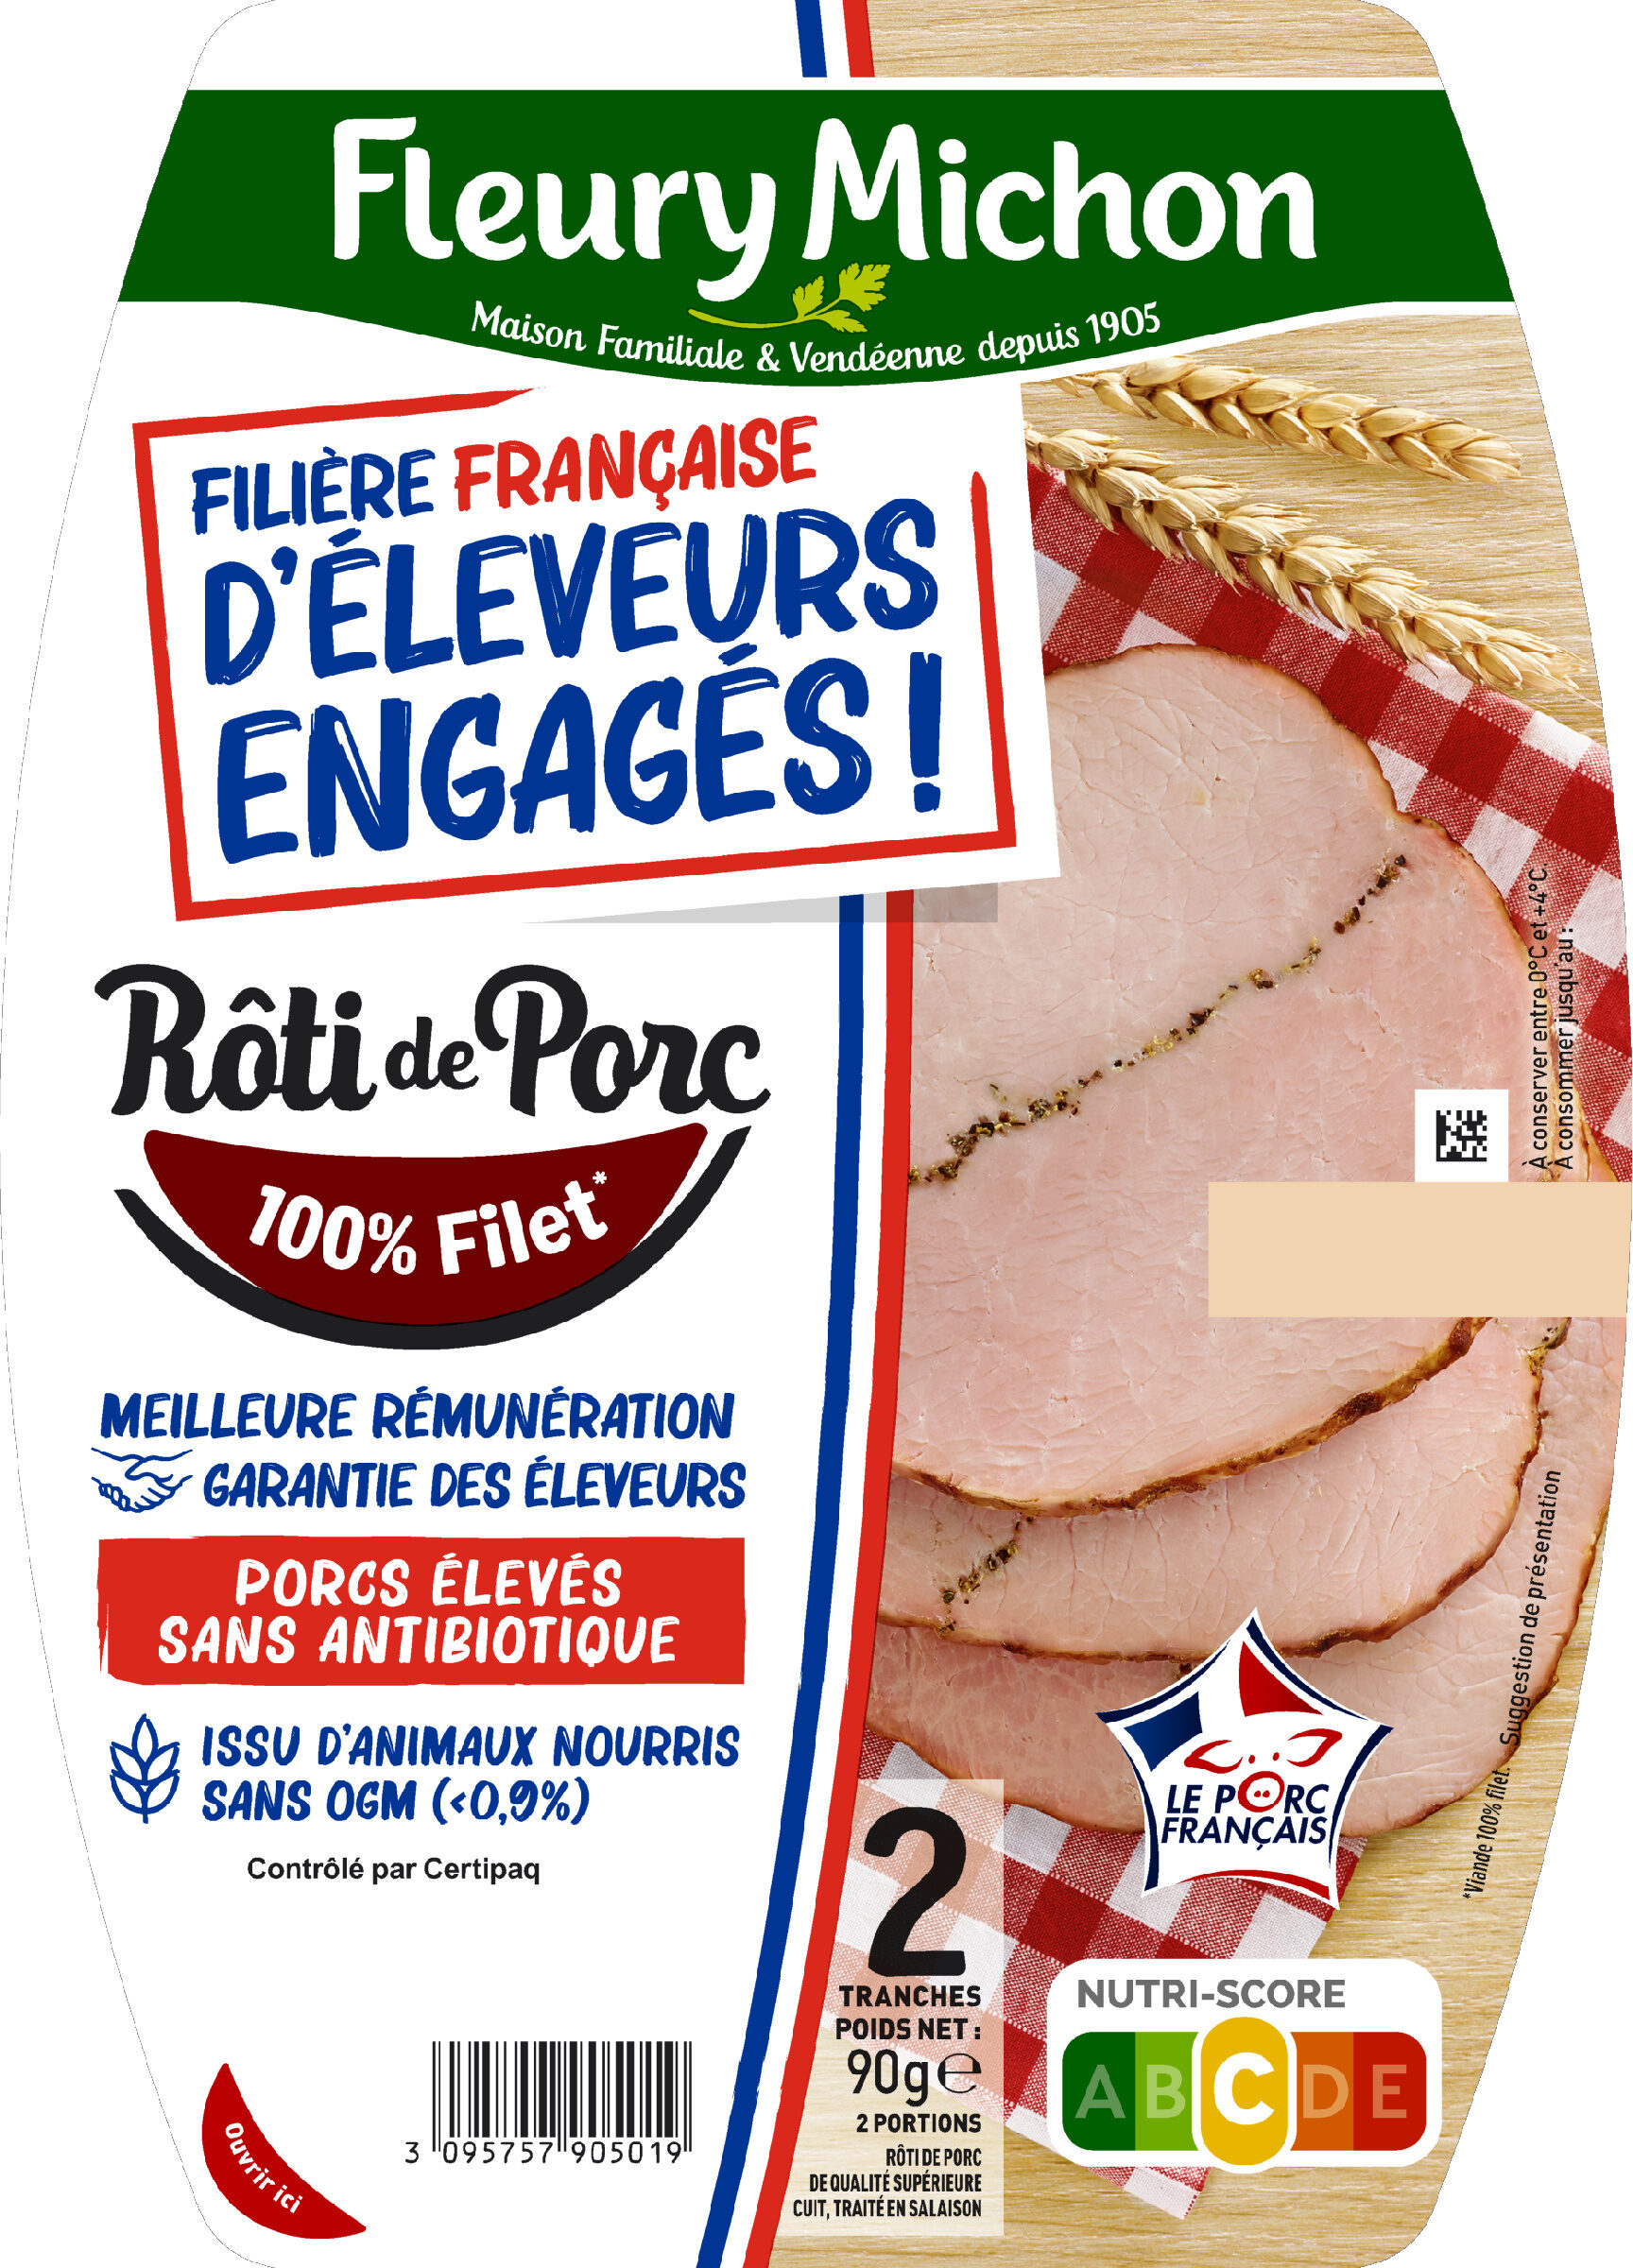 Le Rôti de Porc - 100% filet* - FILIERE FRANCAISE D'ELEVEURS ENGAGES - Product - fr